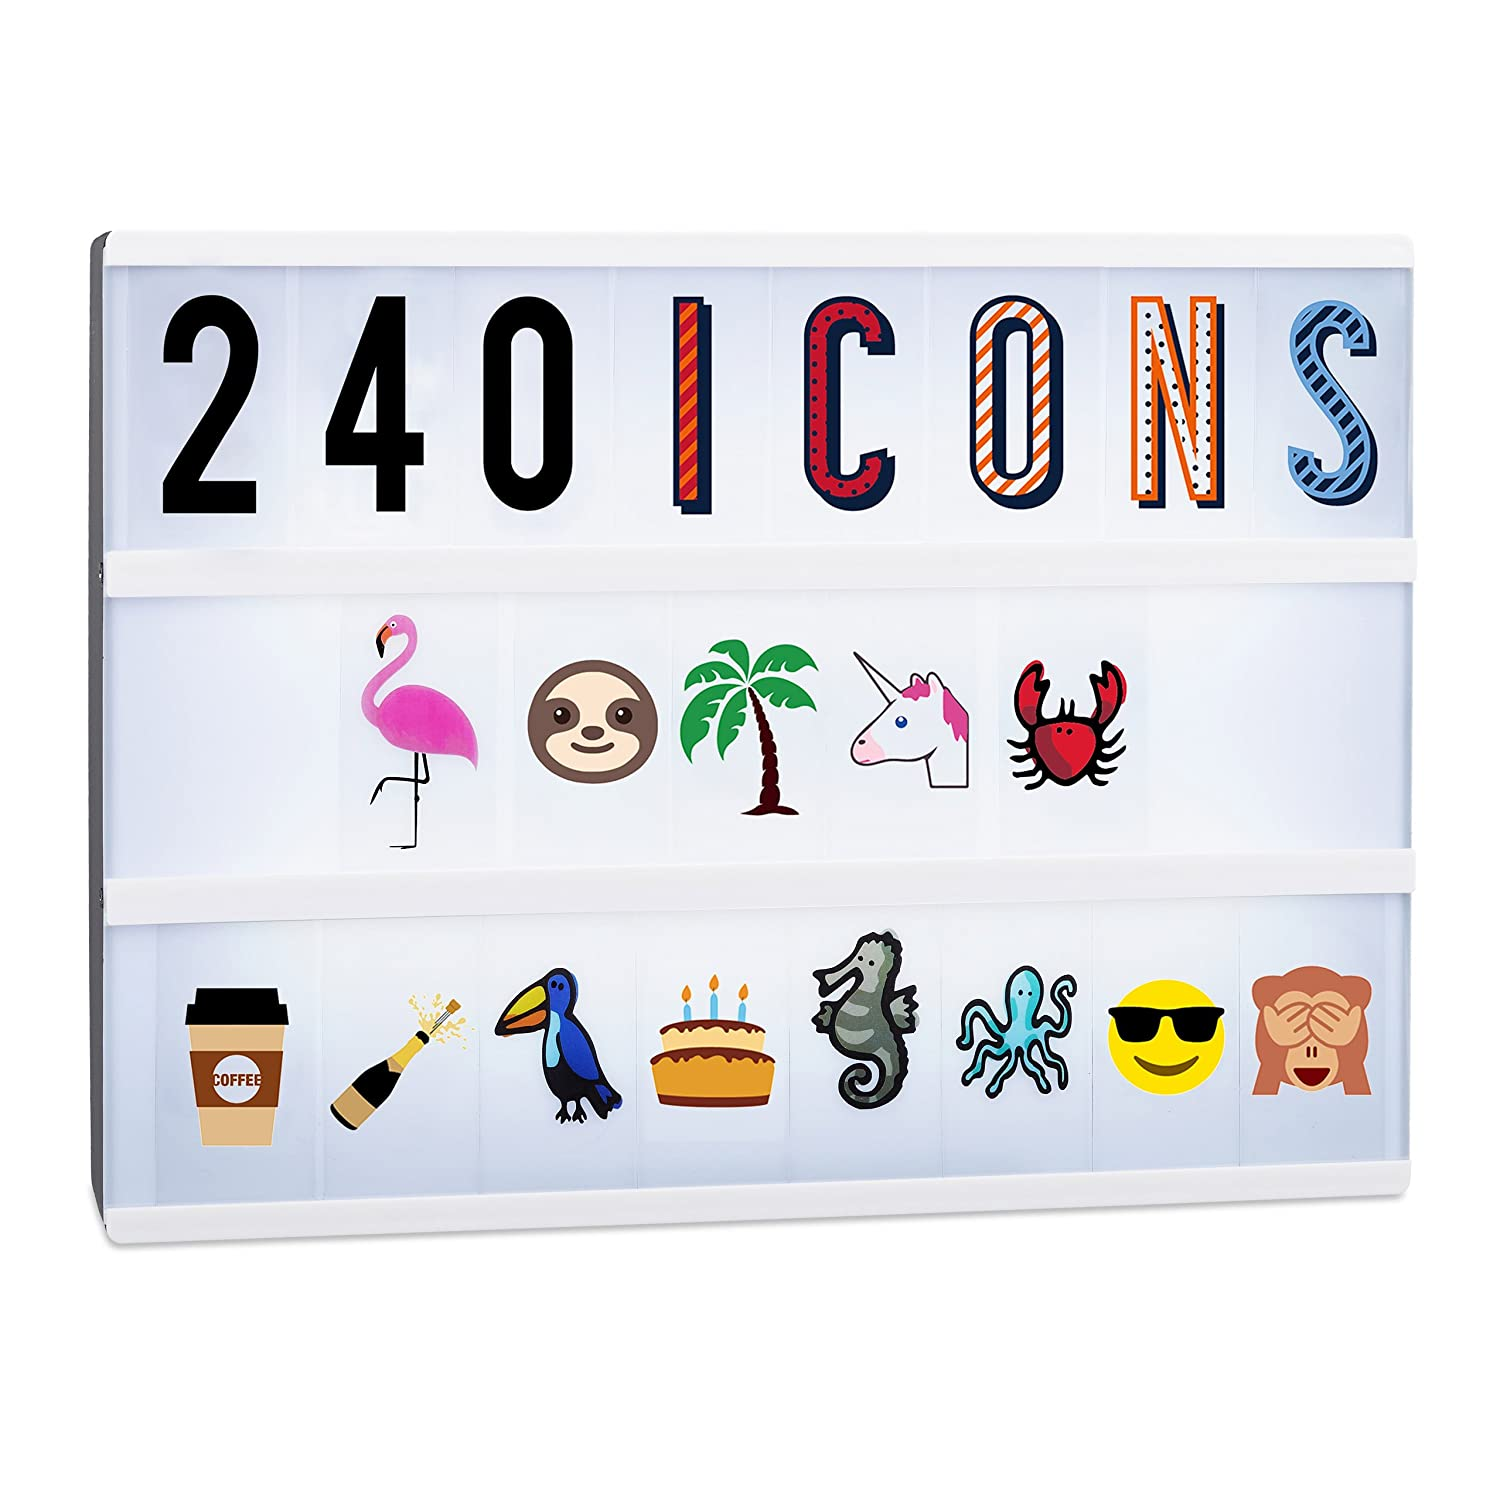 Relaxdays Lightbox Extension Set, 240 Crazy Icons, Accessory Kit with Letters and Numbers, Colourful Light Box Symbols 10022551